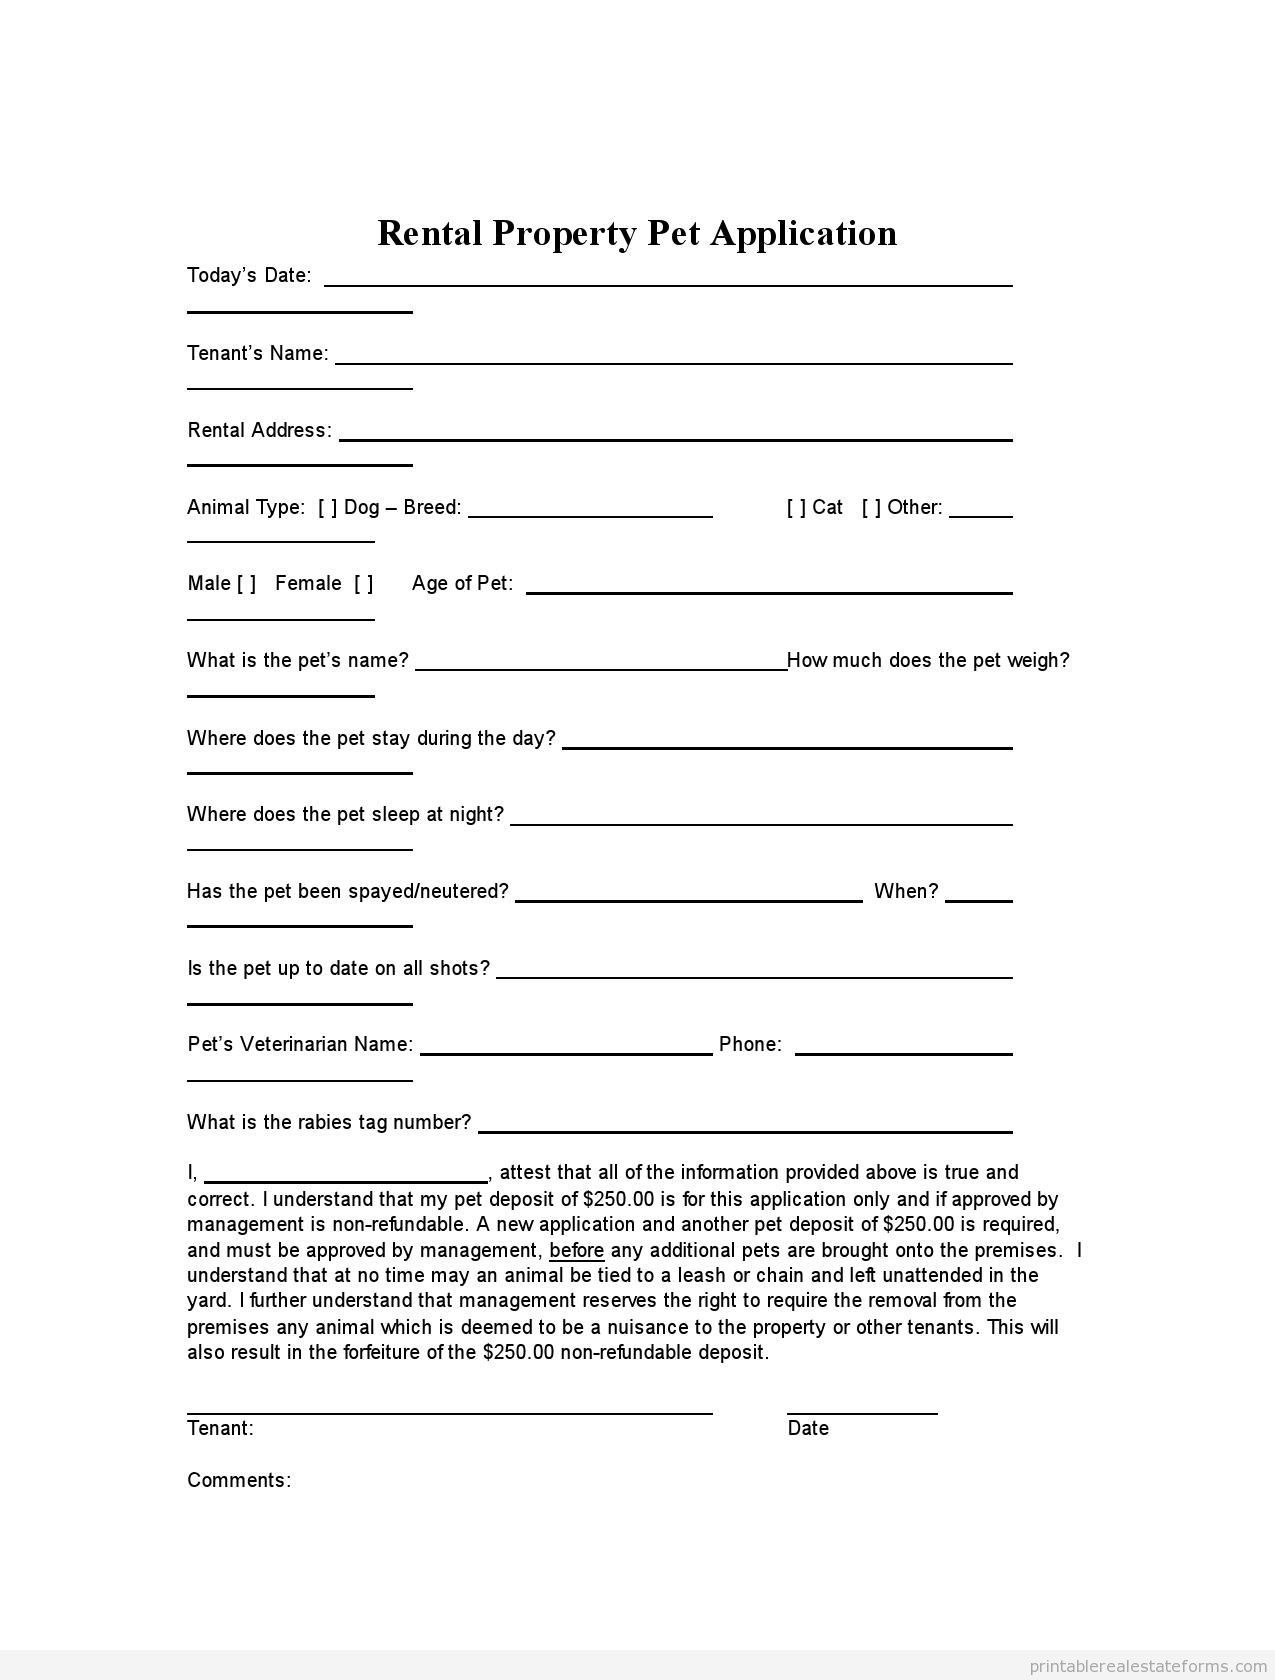 rental property pet application printable real estate printable rental property pet application template 2015